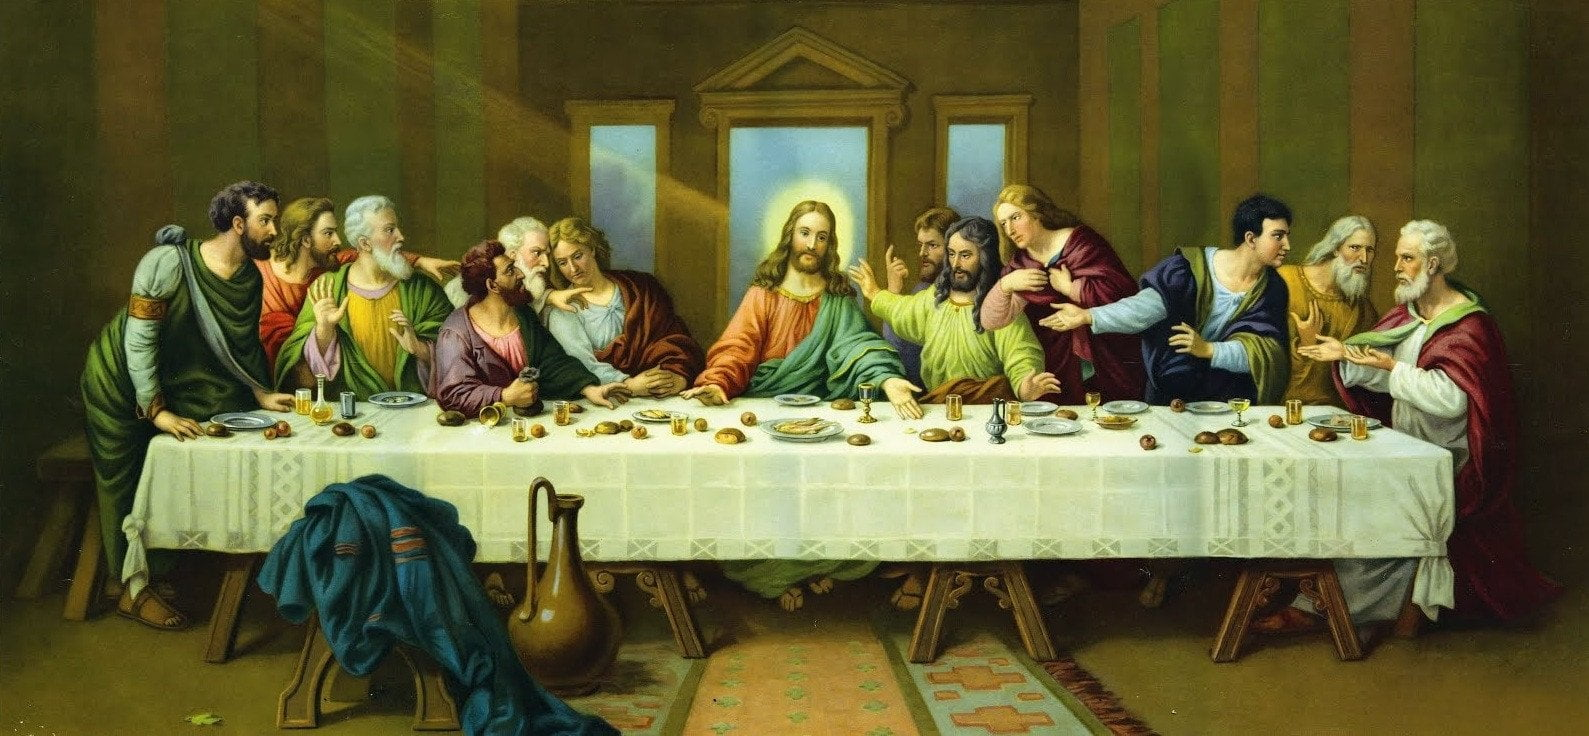 Number 13 Last Supper